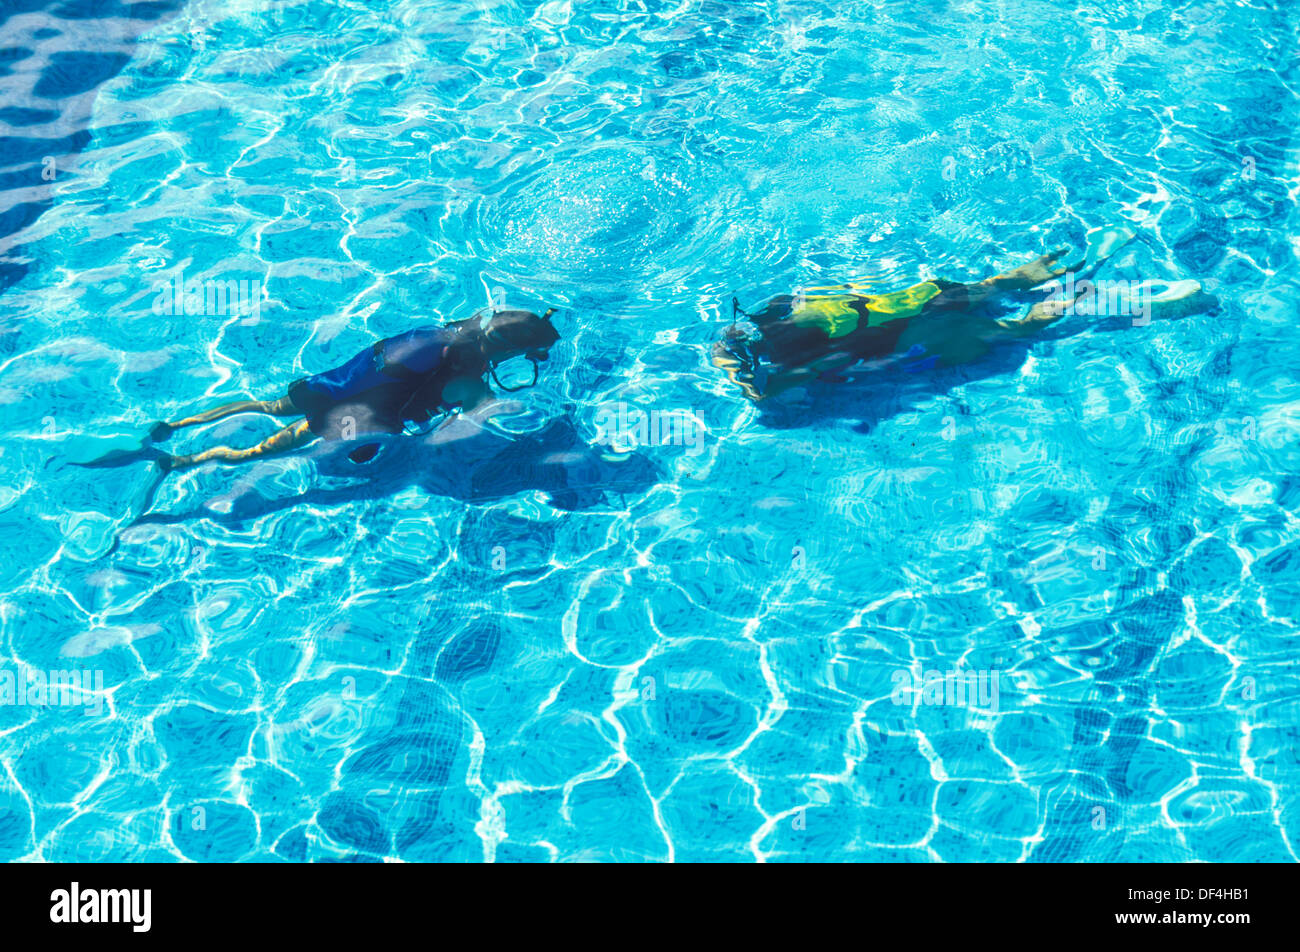 Scuba Divers In Swimming Pool Training Course Yellow Tank Stock Photo Royalty Free Image